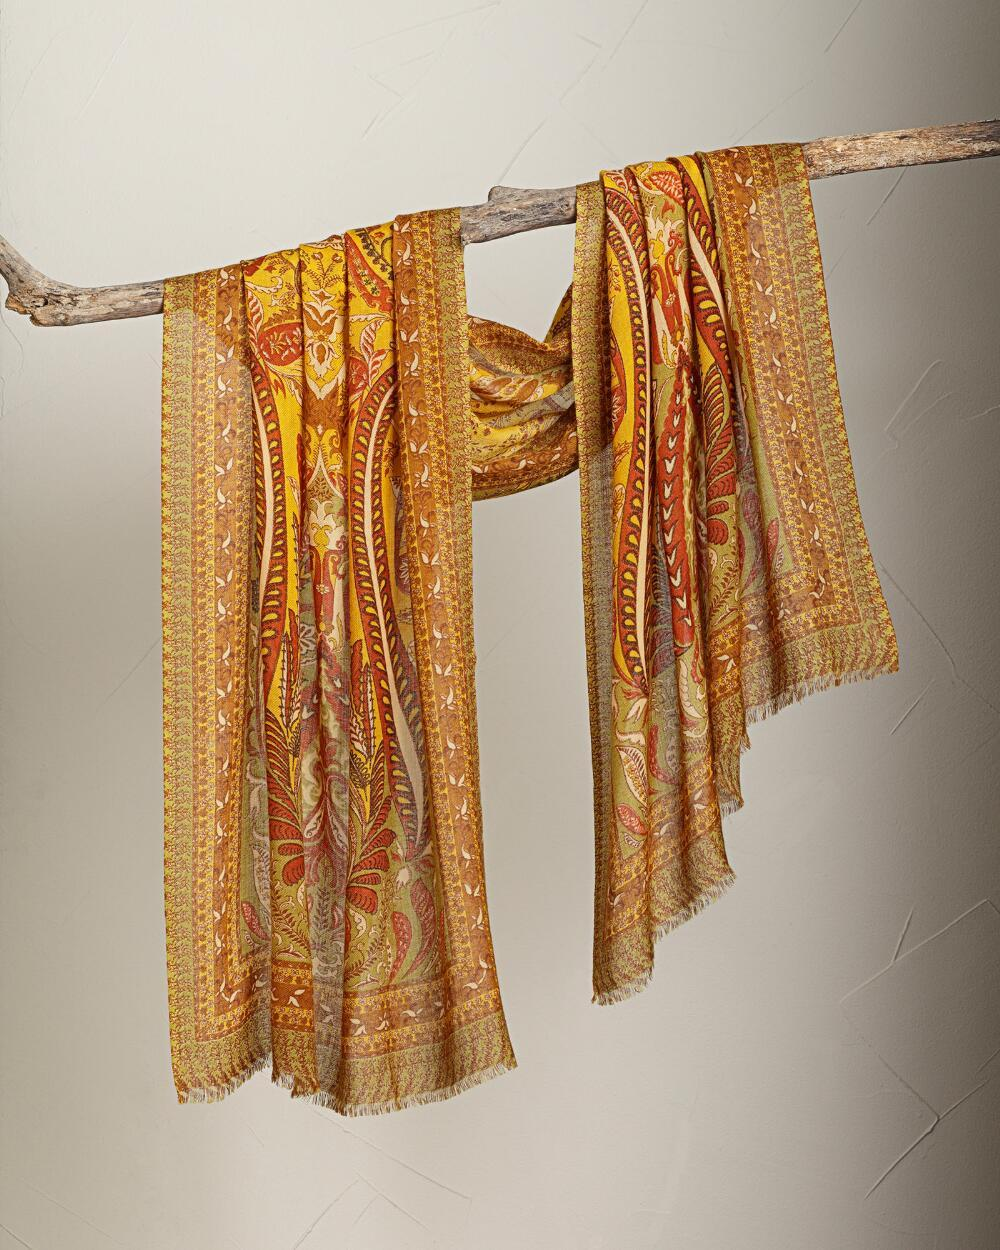 Smithsonian Golden Paisley Shawl 100% Merino Wool  - $99.99